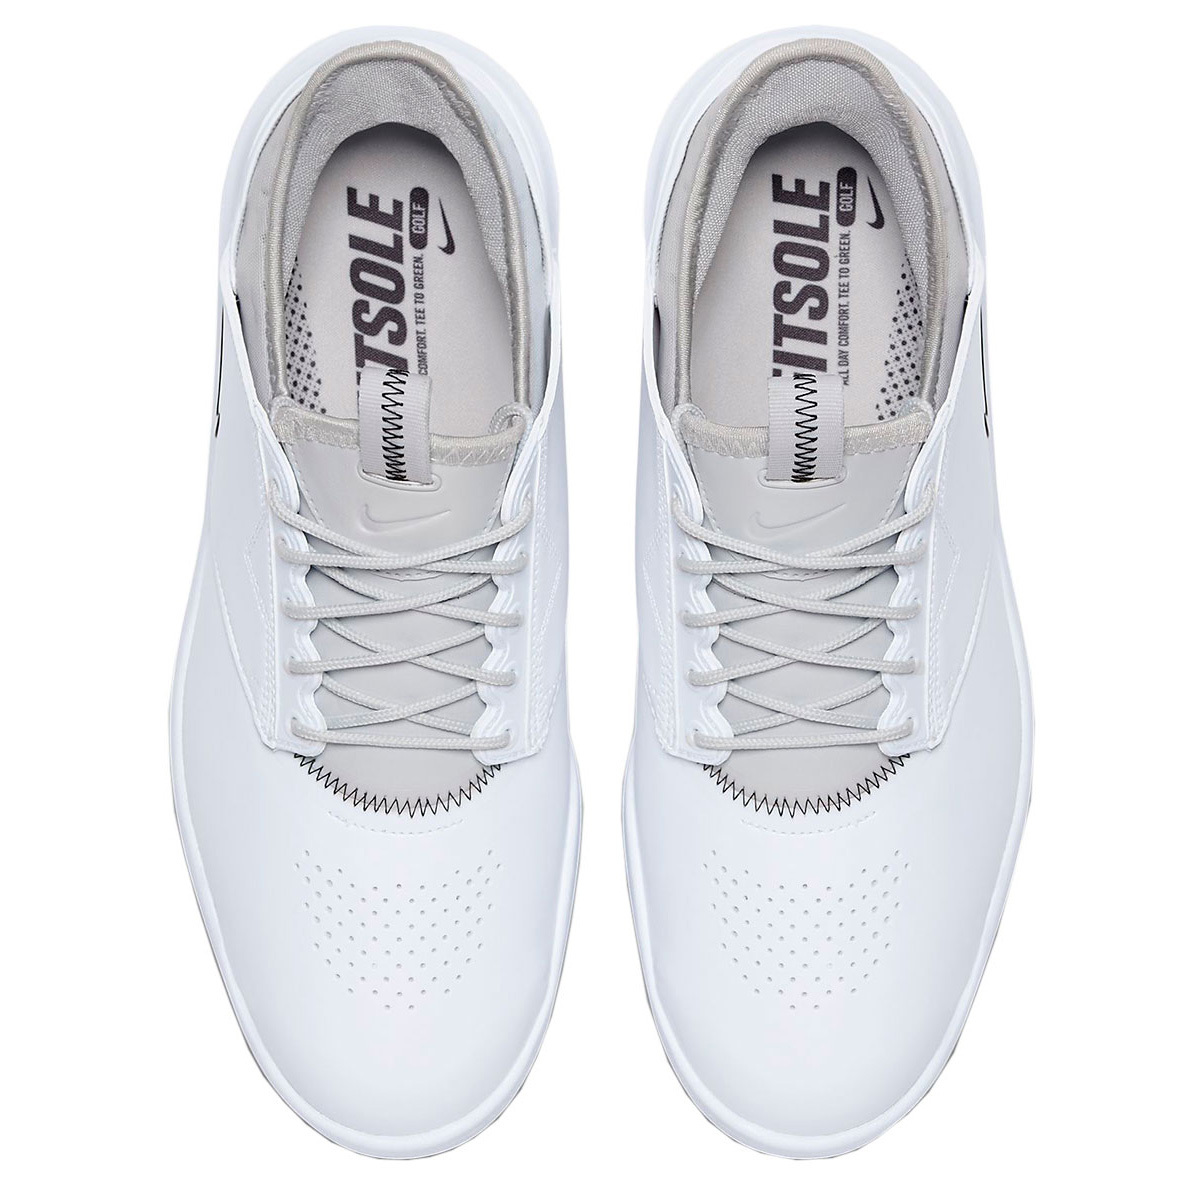 7b3a68c2d8a2e9 Nike Golf Air Zoom Direct Shoes from american golf